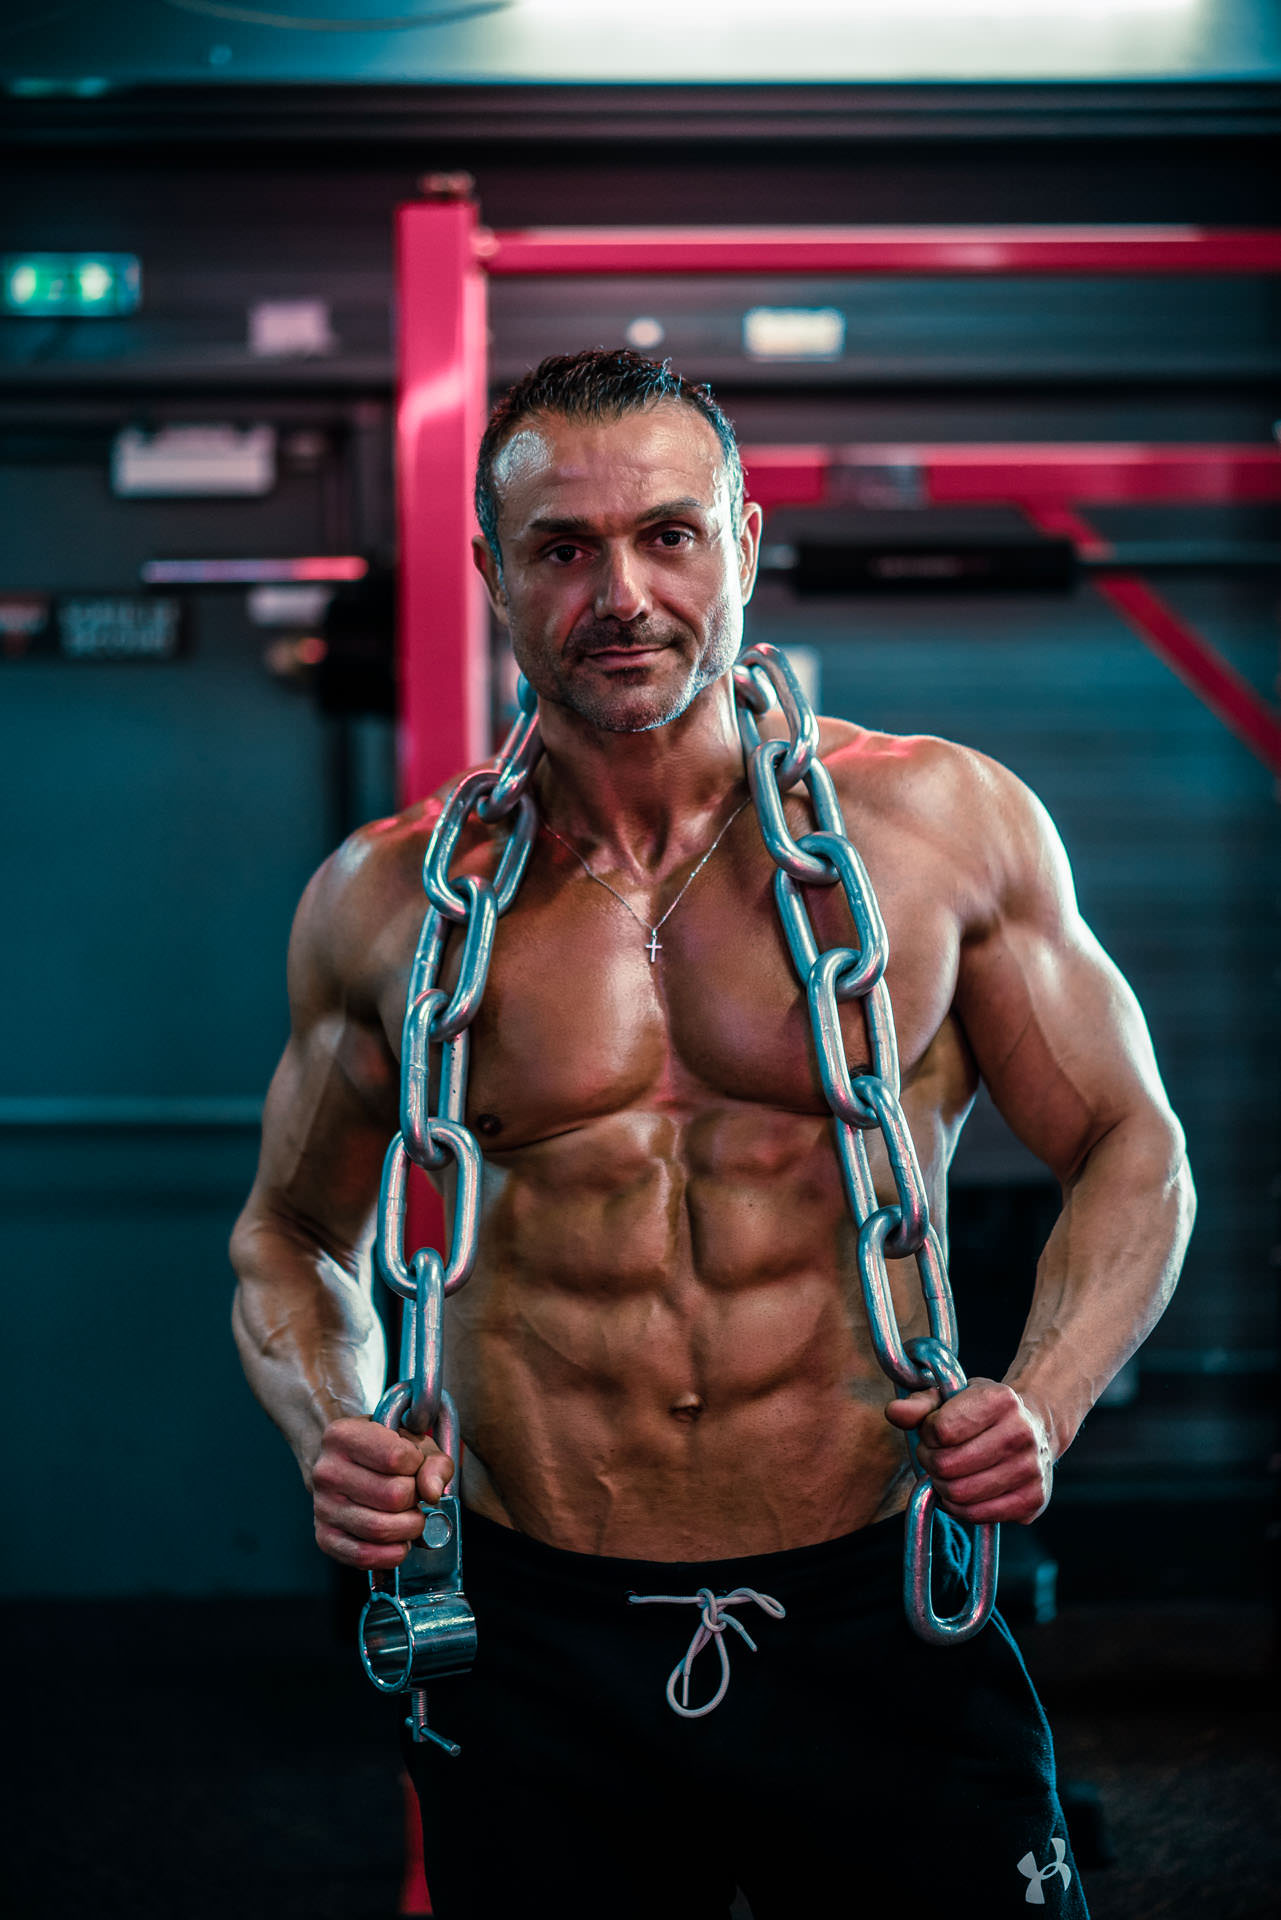 2020-03-15 - Enzo - Muscle Factory - 01607 - 1920px